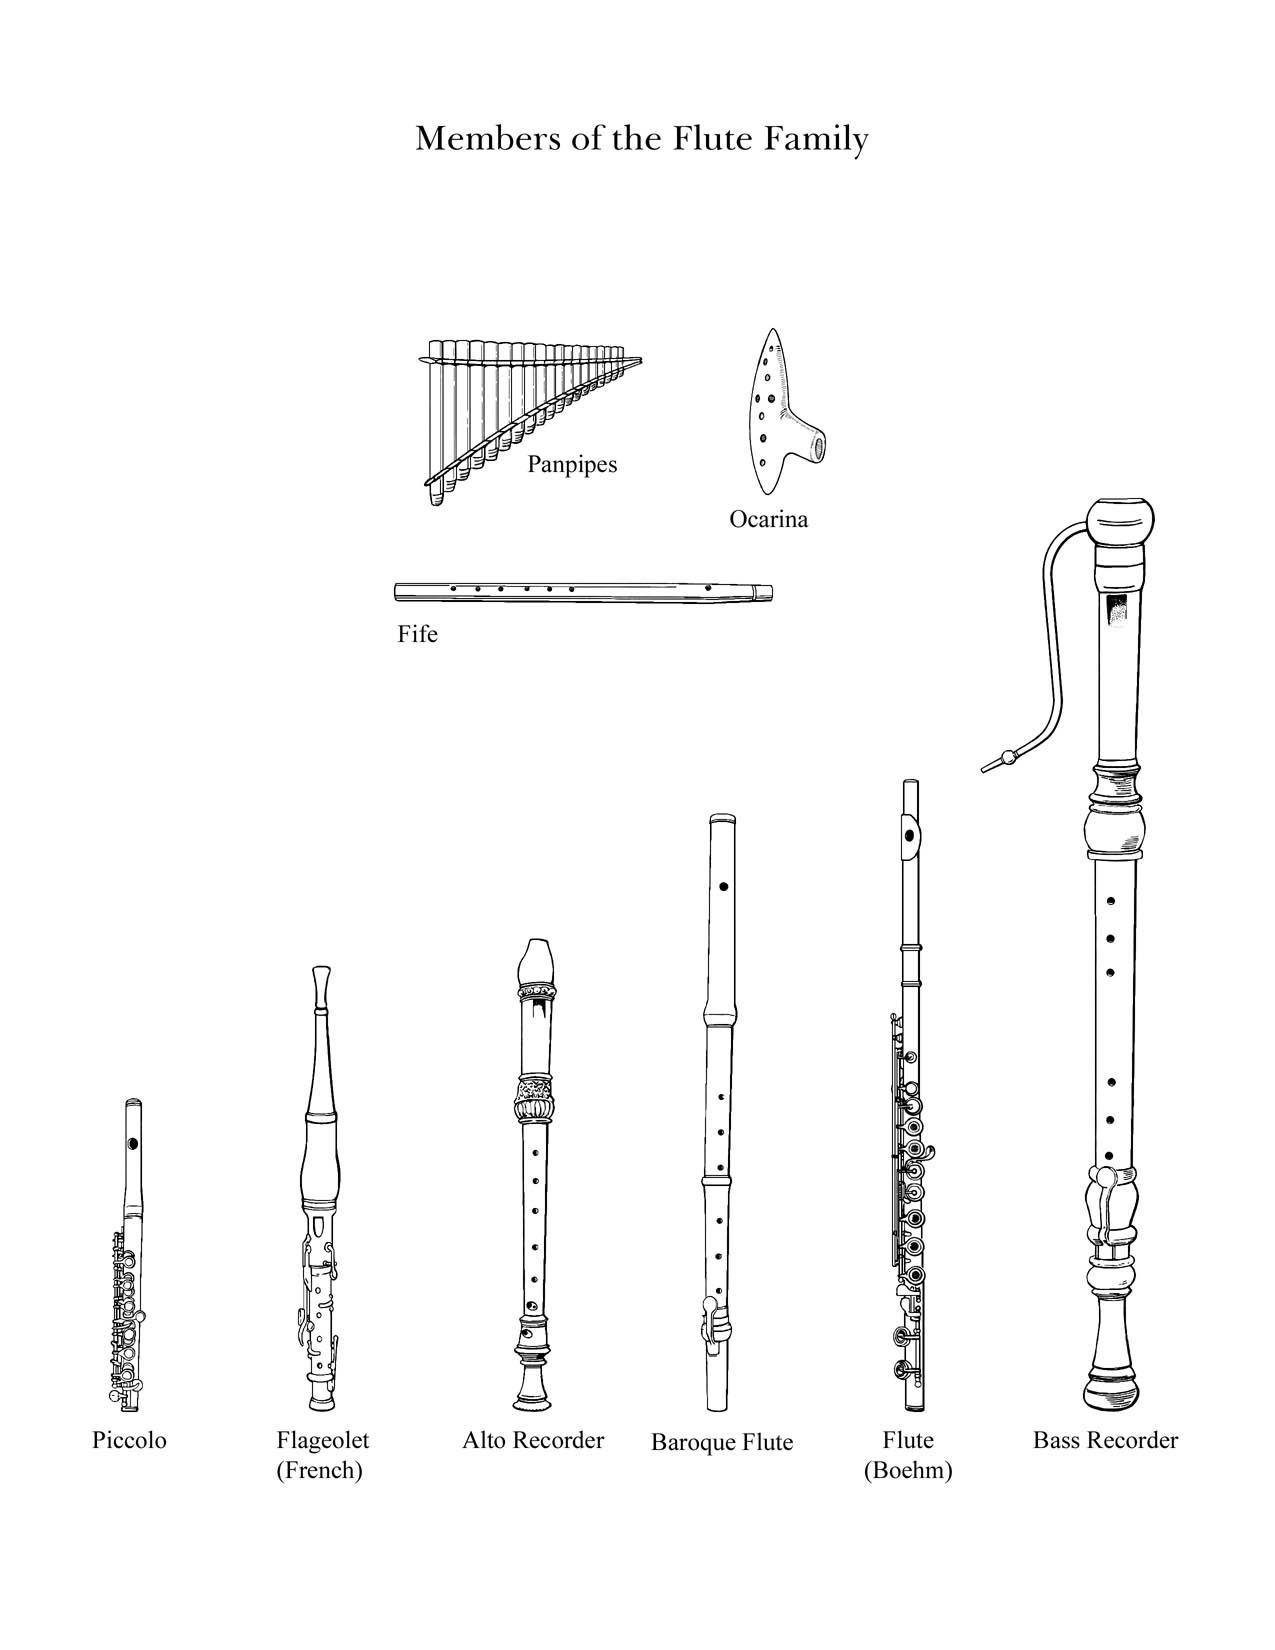 The Flute Family Drawings Of Instruments From The